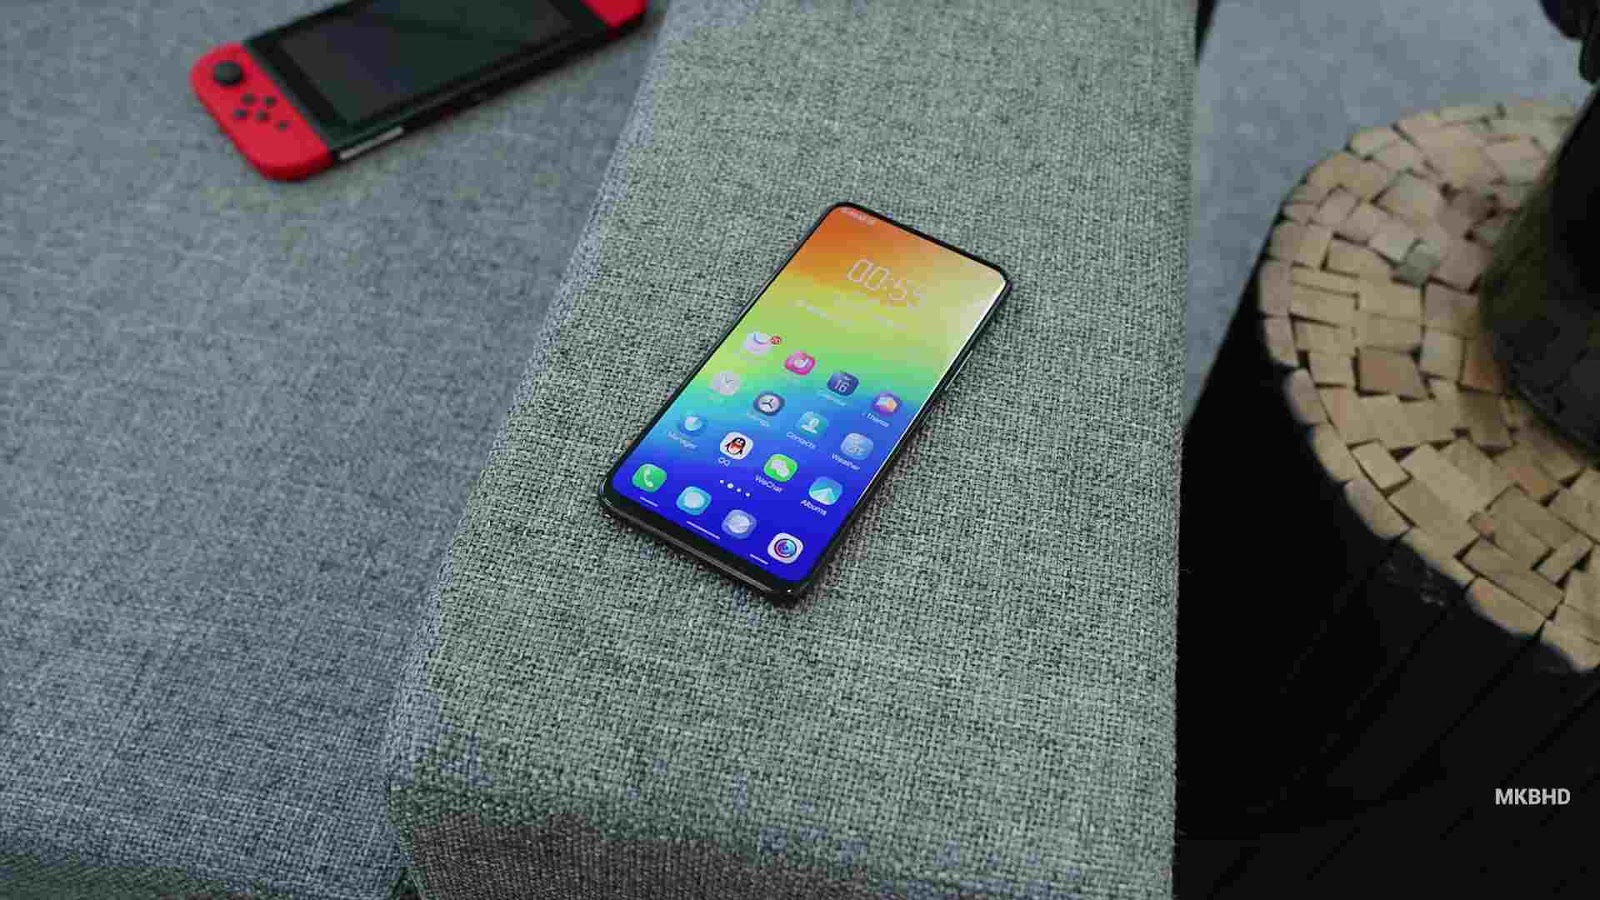 The New Complete Bezeless Vivo Nex S Smart Phone